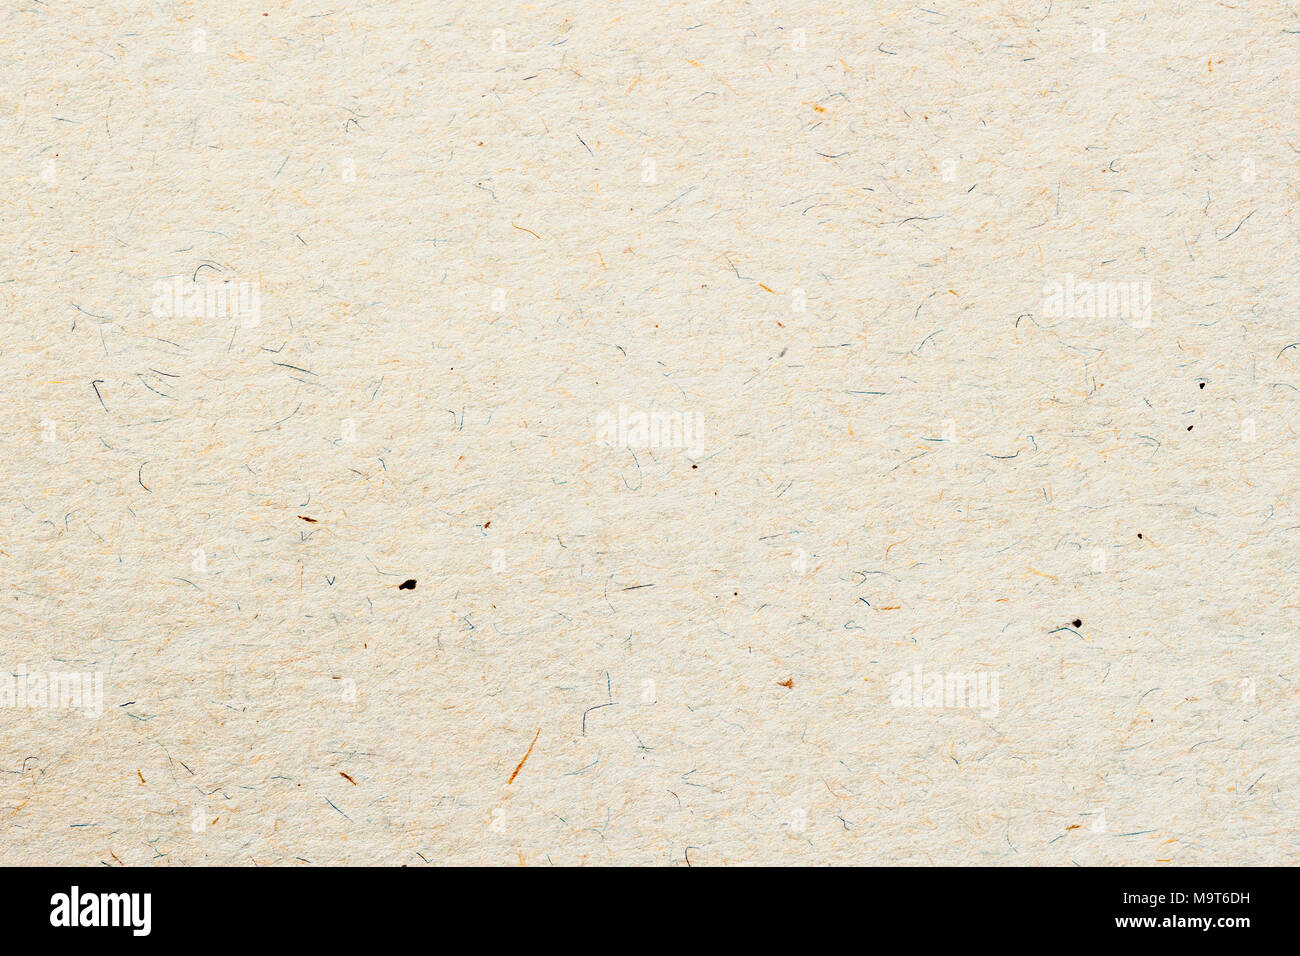 Texture of beige in old paper for artwork. Modern background, backdrop, substrate, composition use with copy space - Stock Image